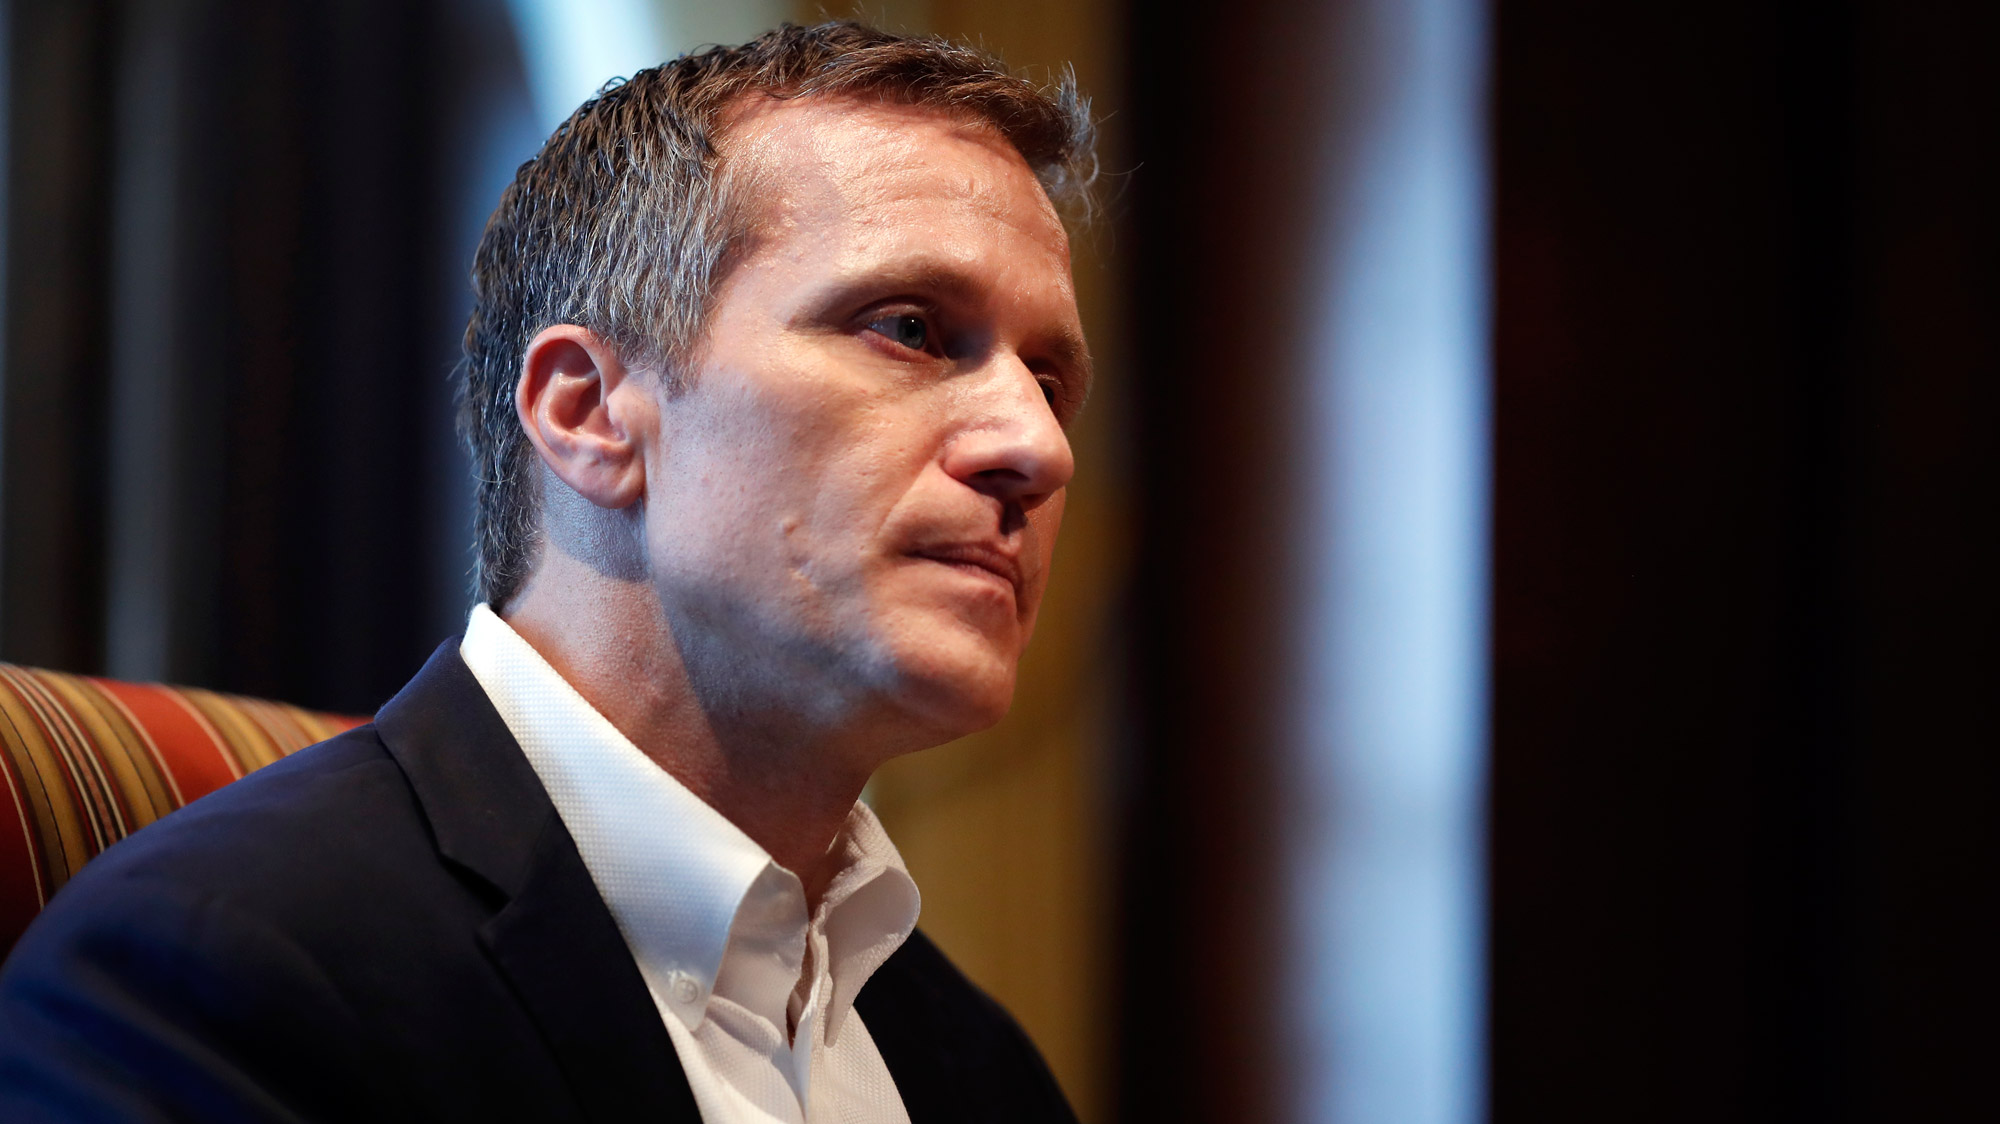 Married Missouri governor Eric Greitens accused of blackmailing lover